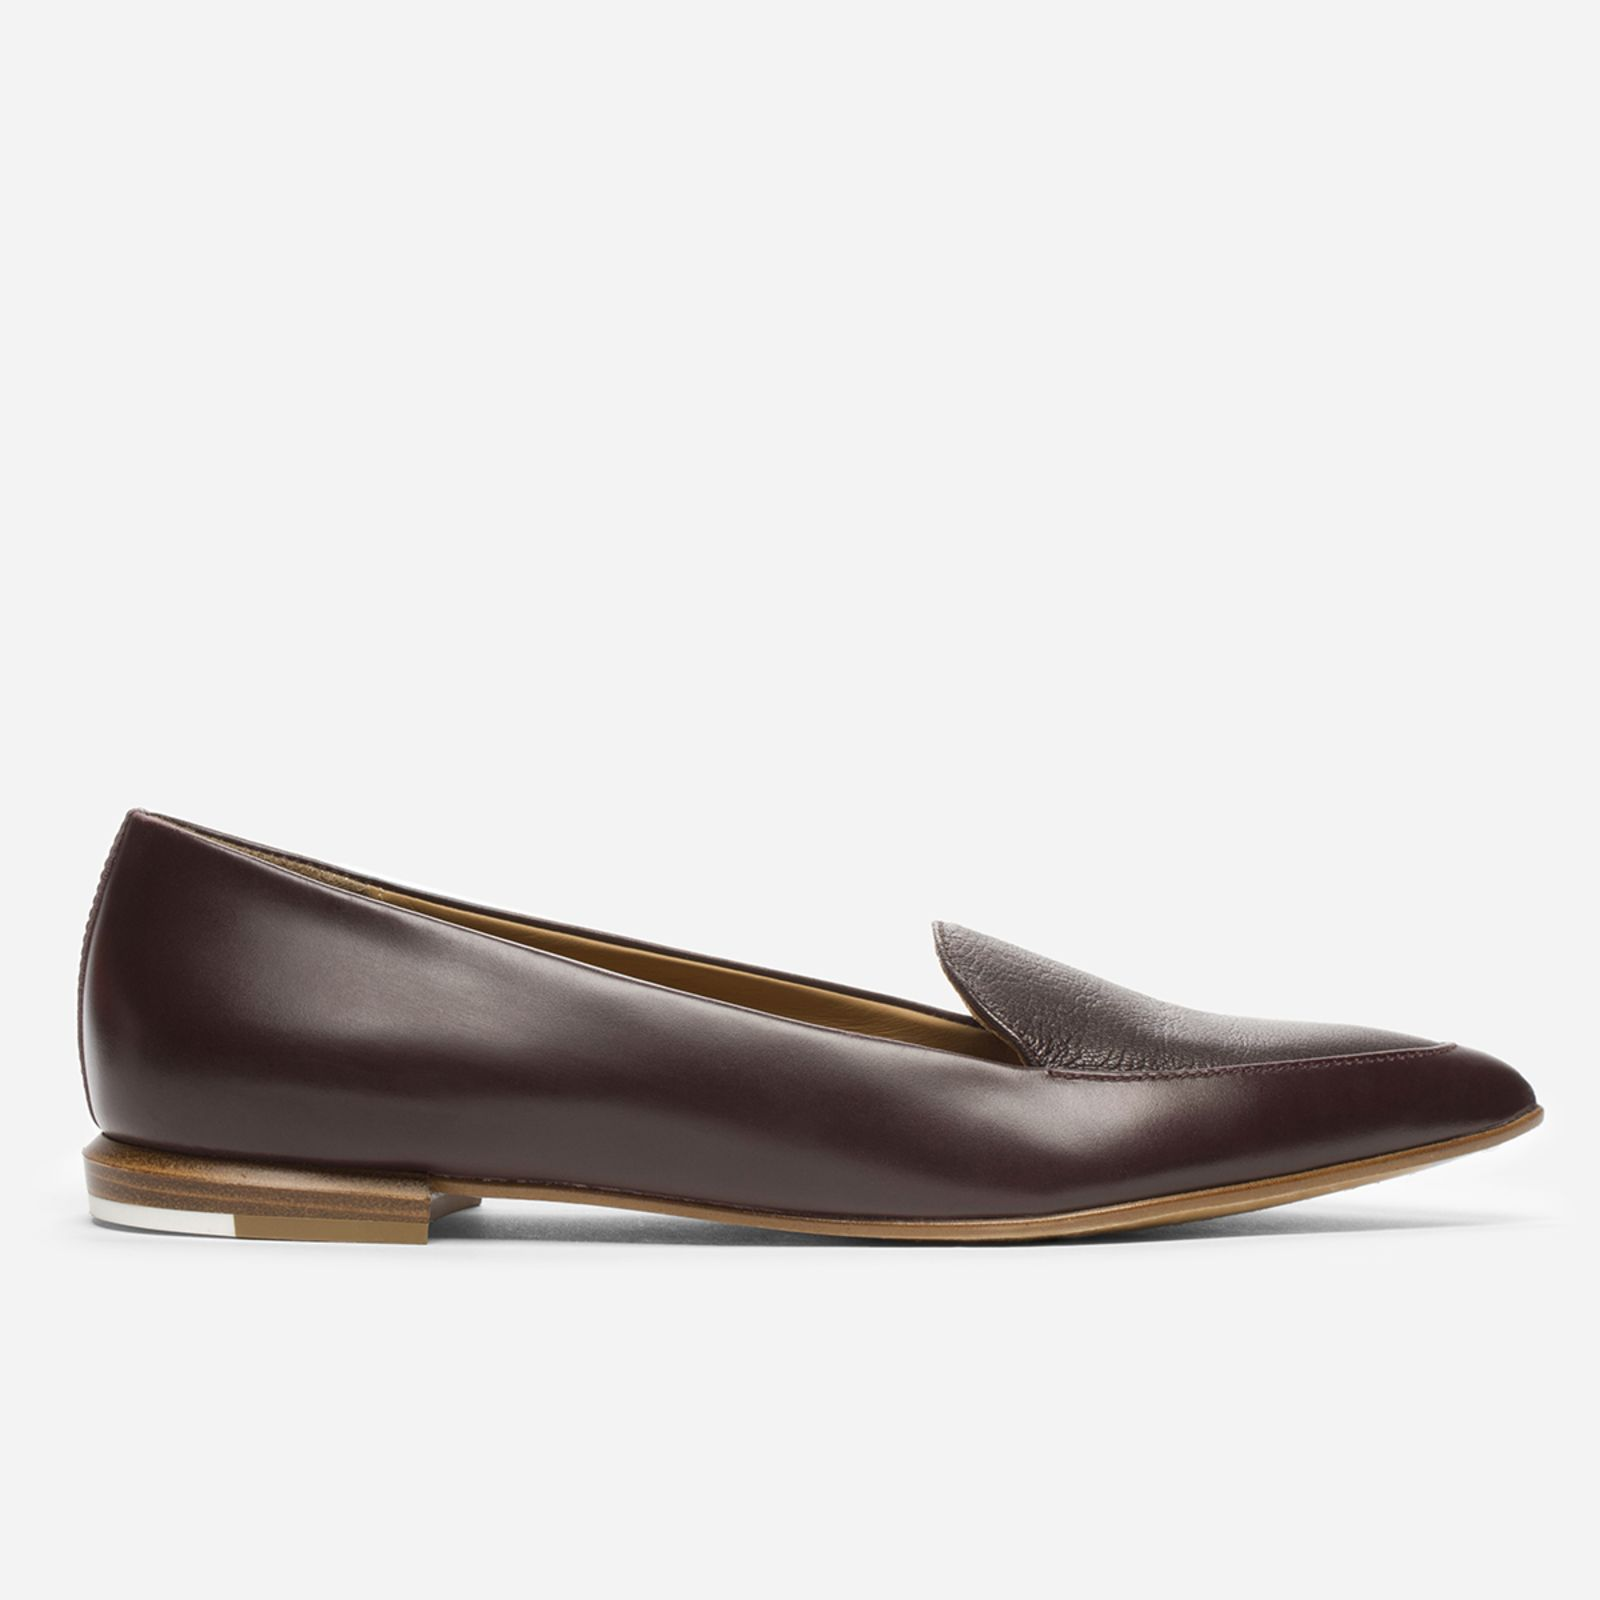 women's leather flats by everlane in burgundy, size 9.5